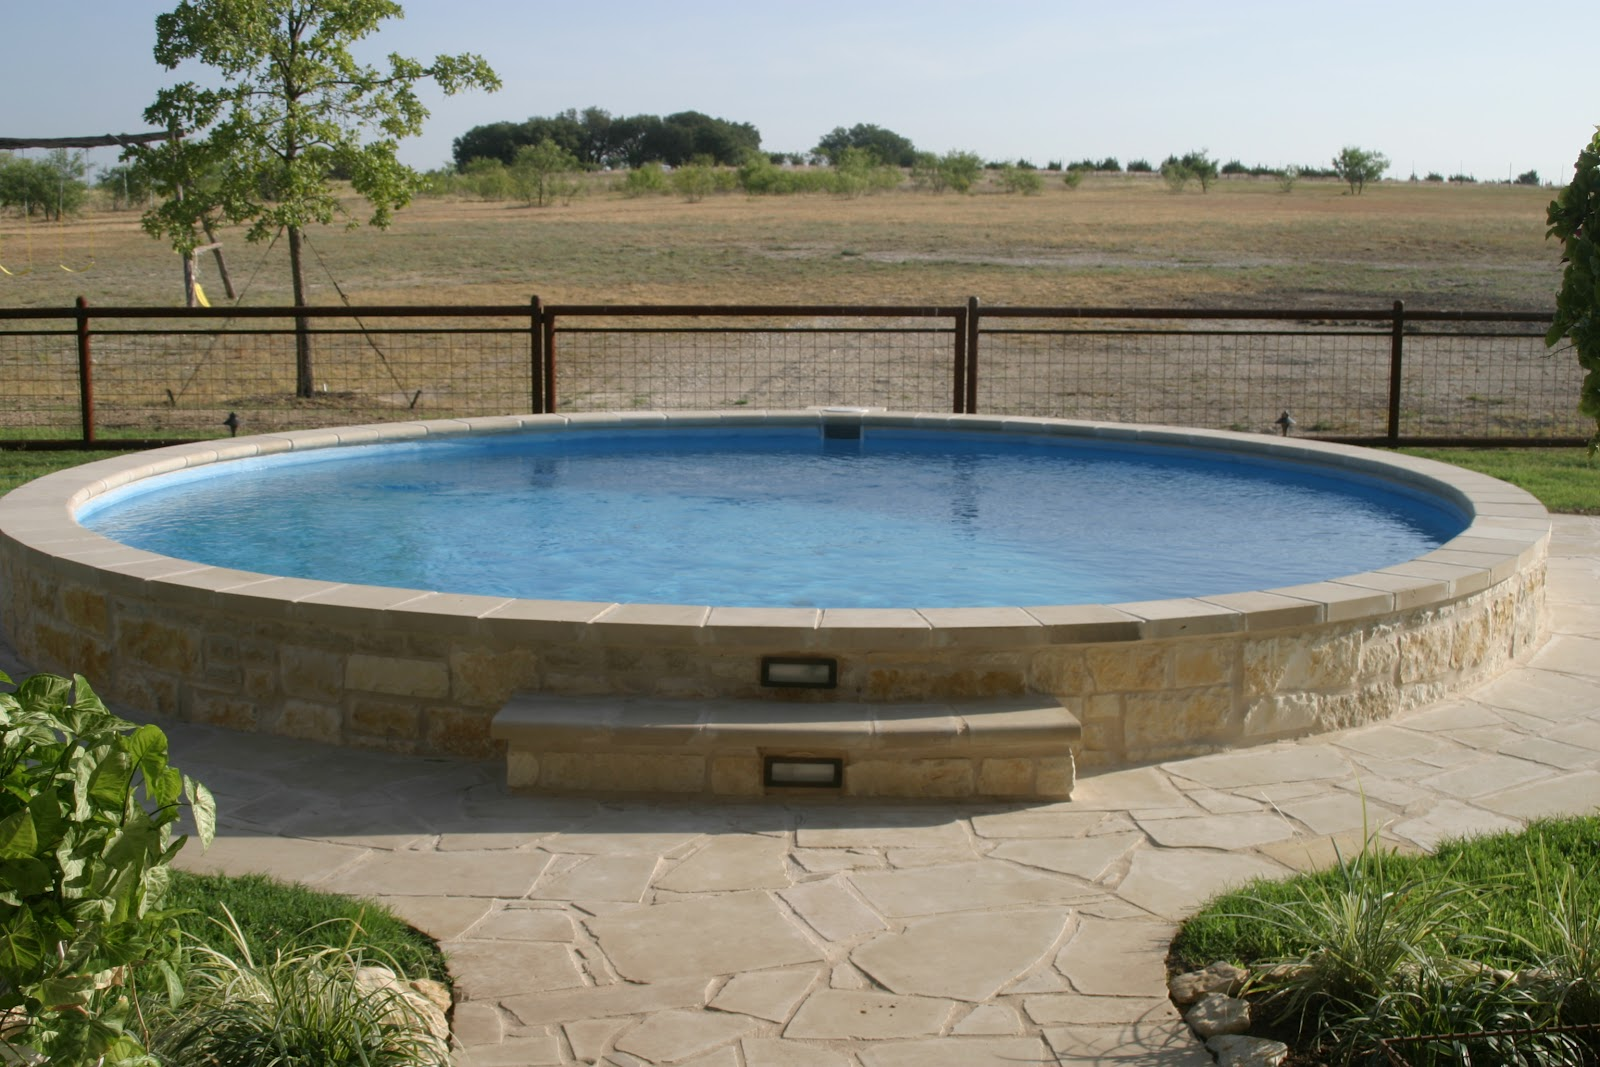 Tanks and troughs for How to build a grain bin swimming pool